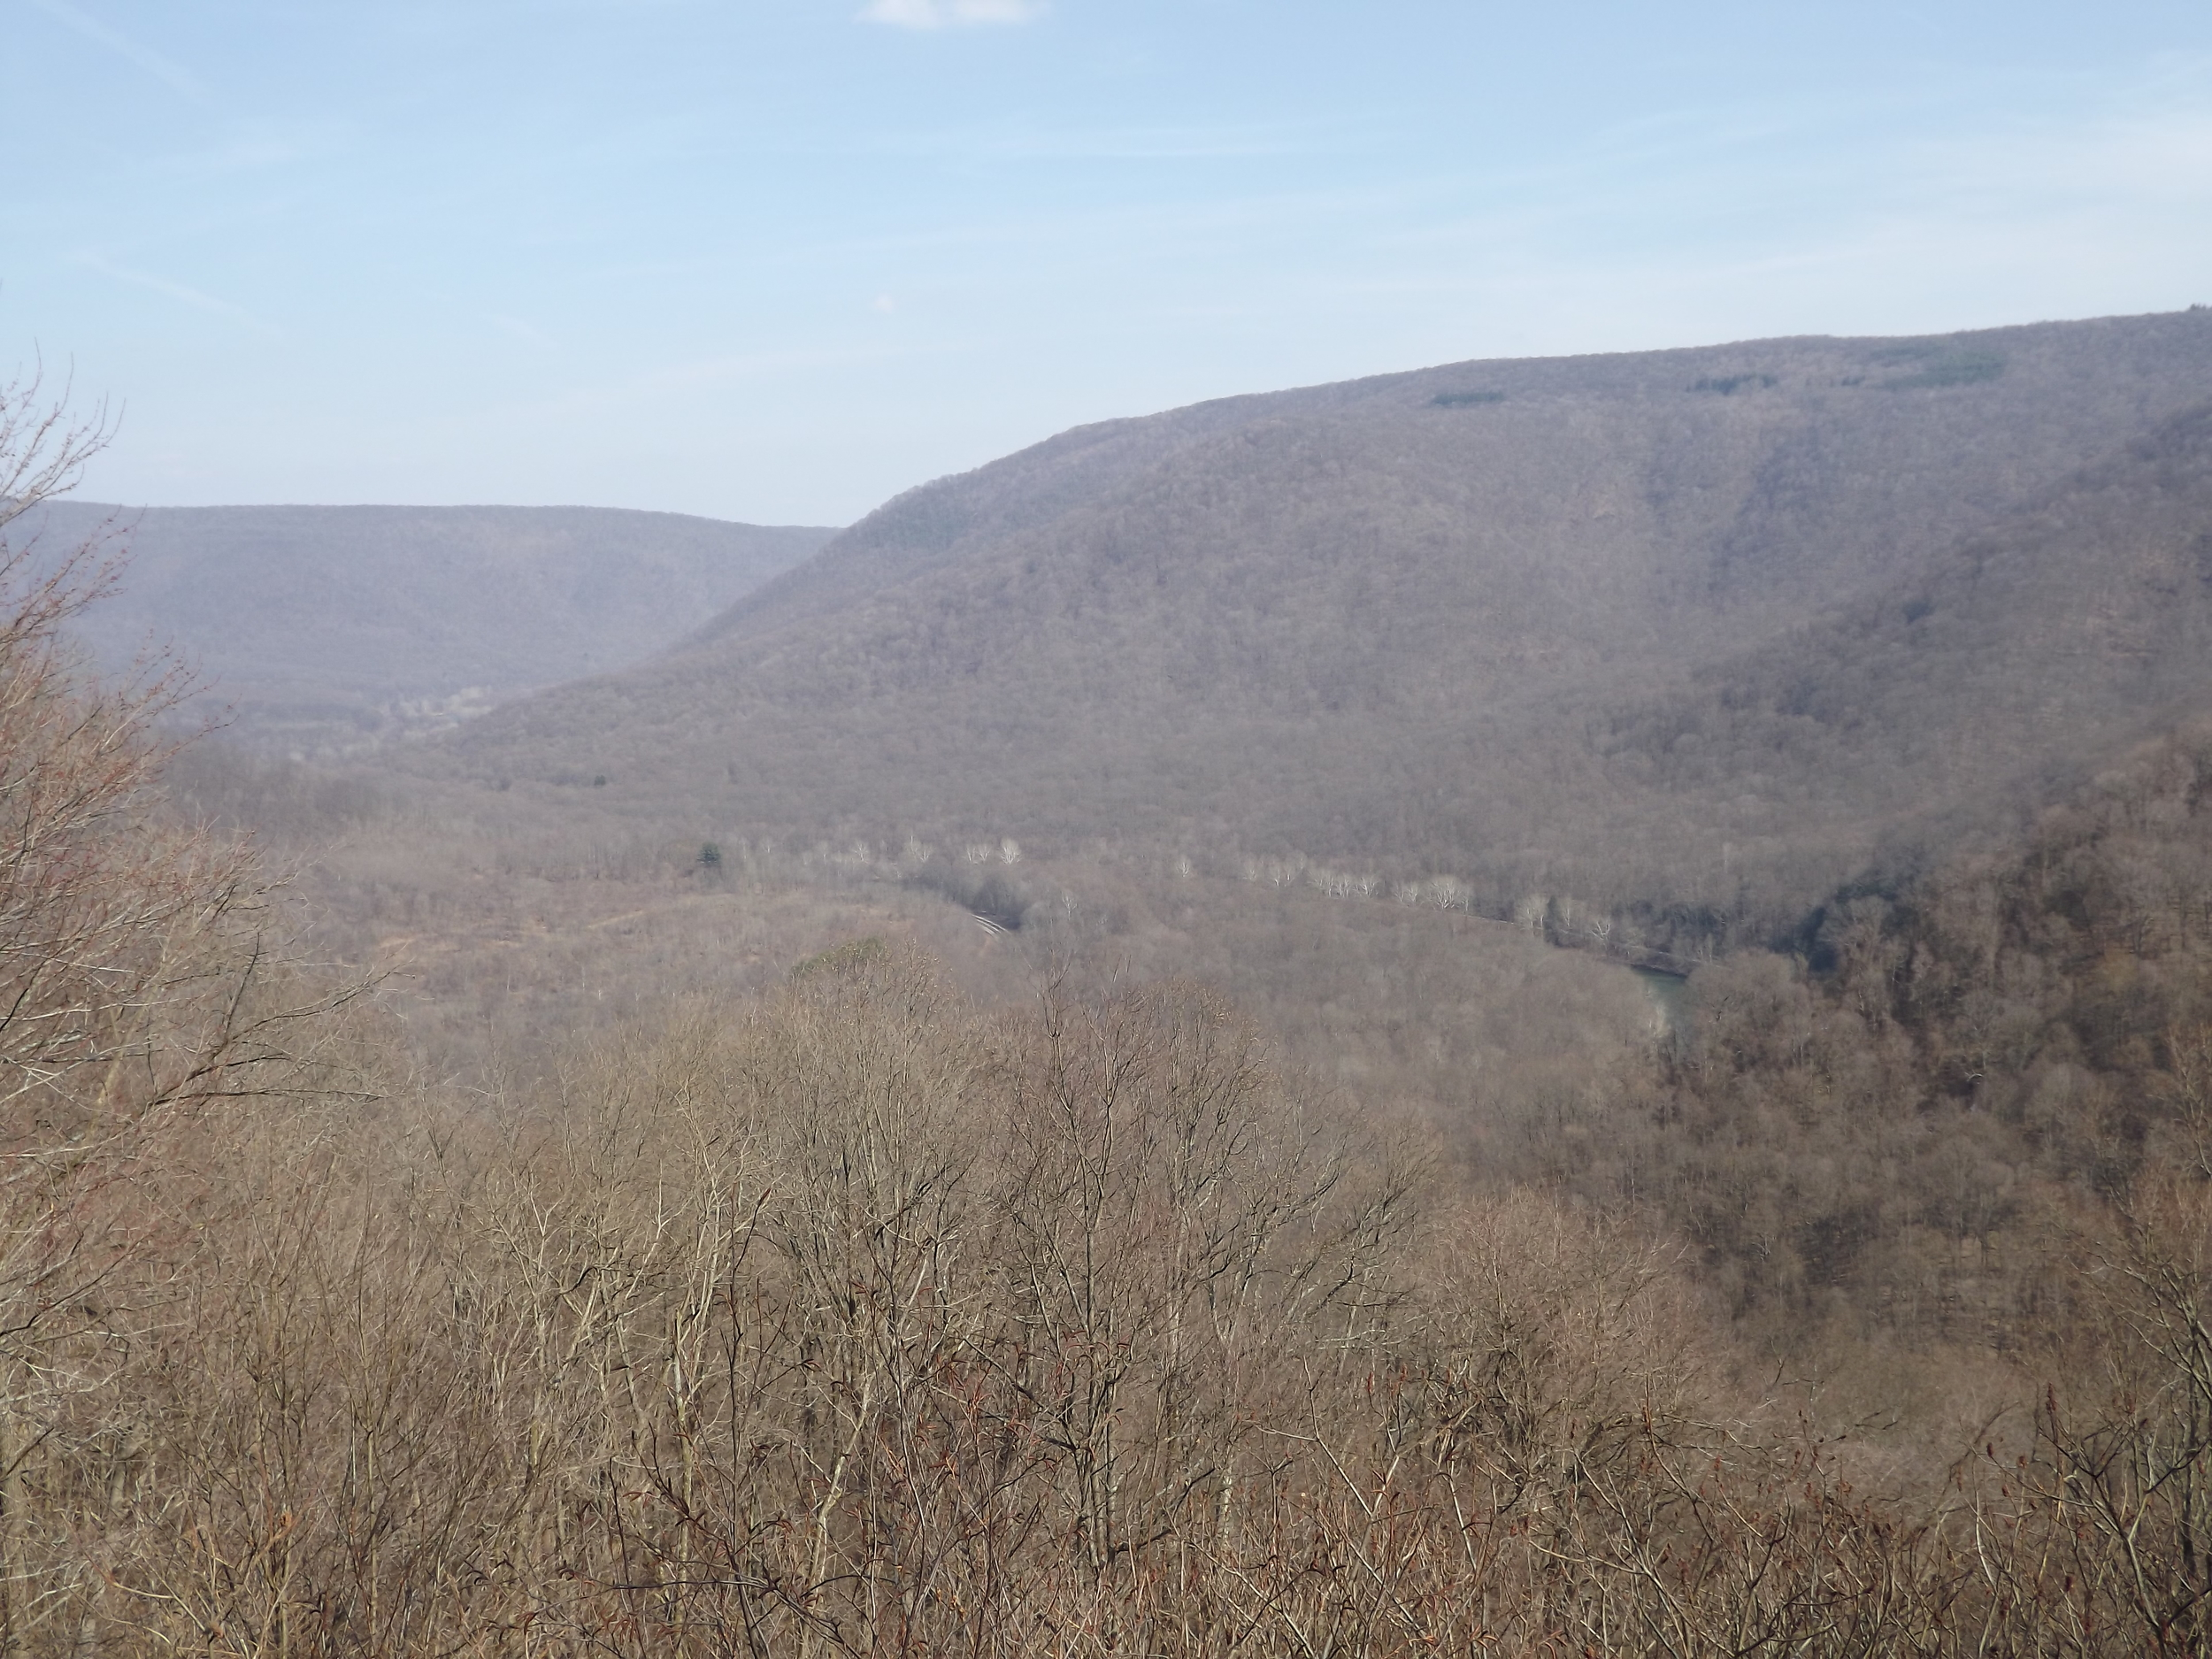 Baughman Rock is about 5 miles east of Ferncliff Peninsula and has some spectacular views of the Youghigheny river valley from the top of the mountains. Since the trees hadn't even began to leaf yet, my pictures turned out a little drab with the brown of the forest being so dominating.